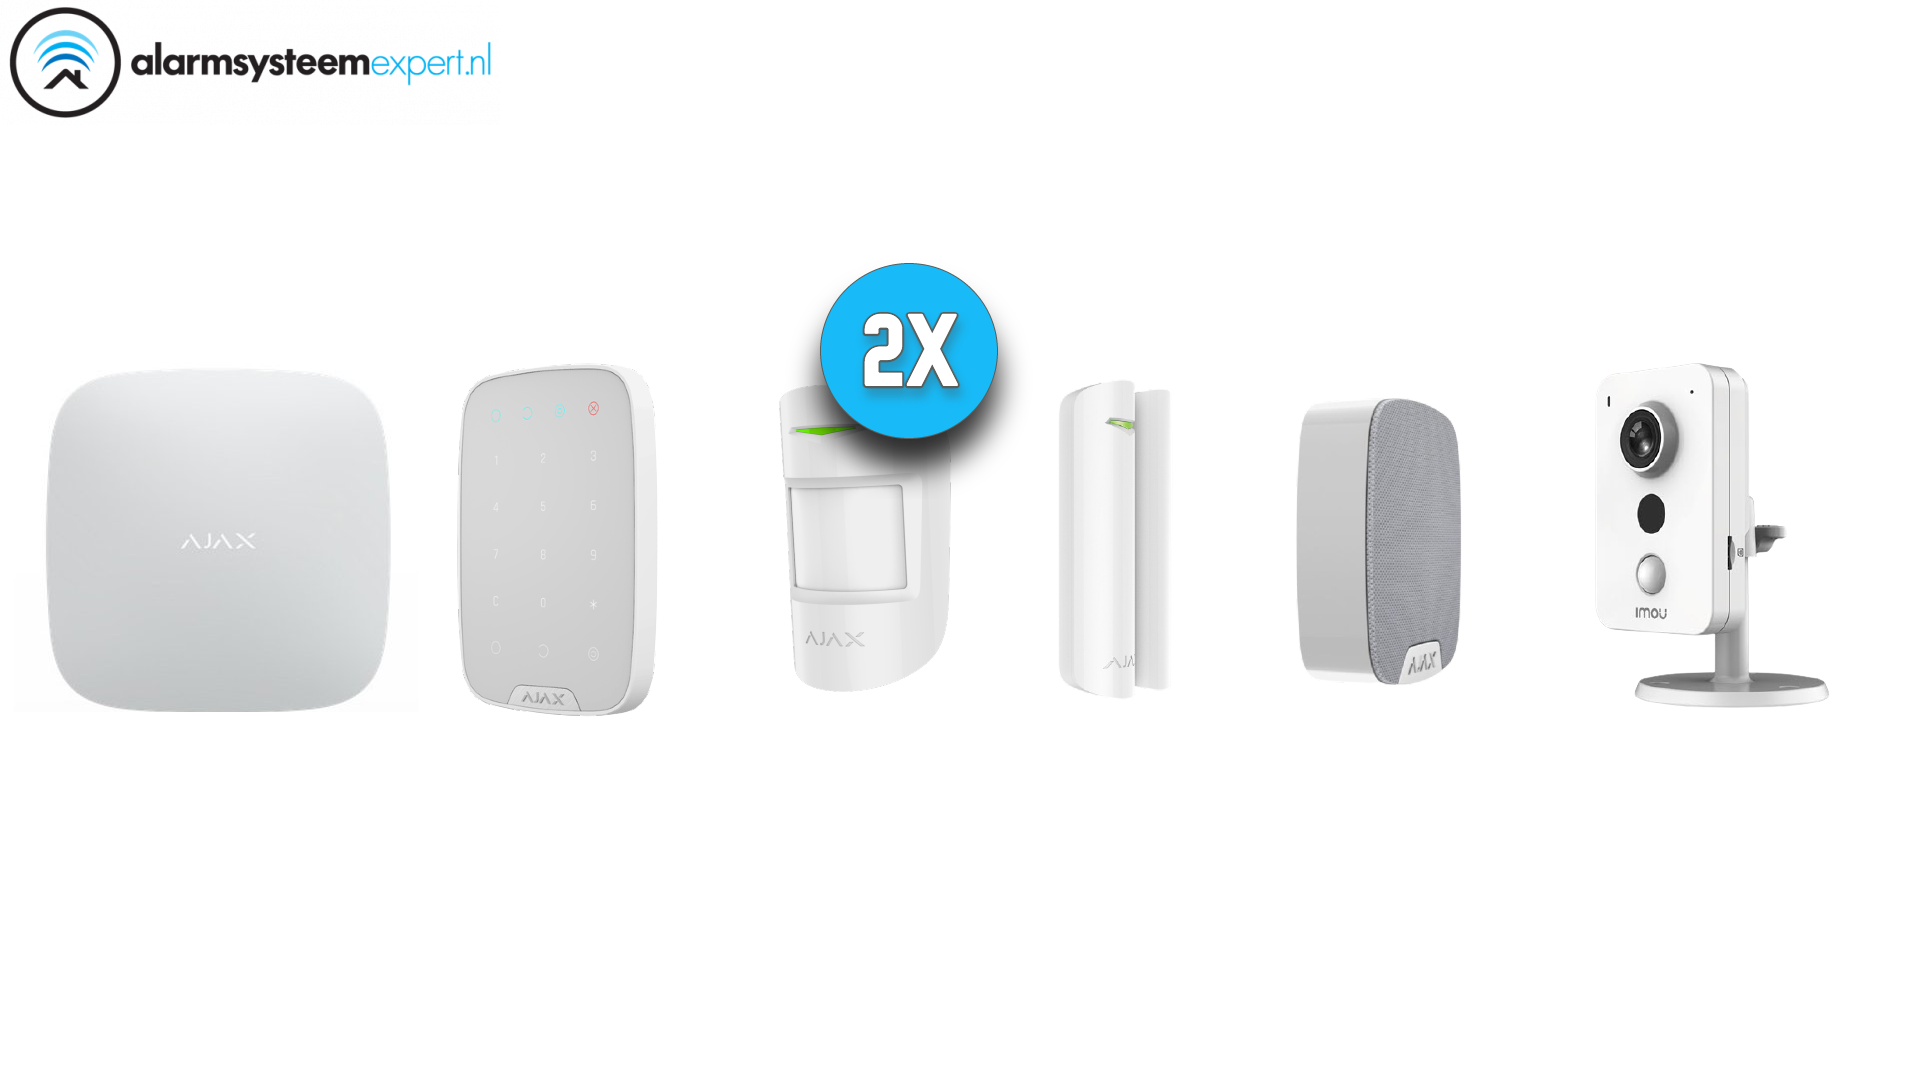 Kit de sistema de alarma 2C Wireless con Wifi Cube Camera para interior (Blanco)